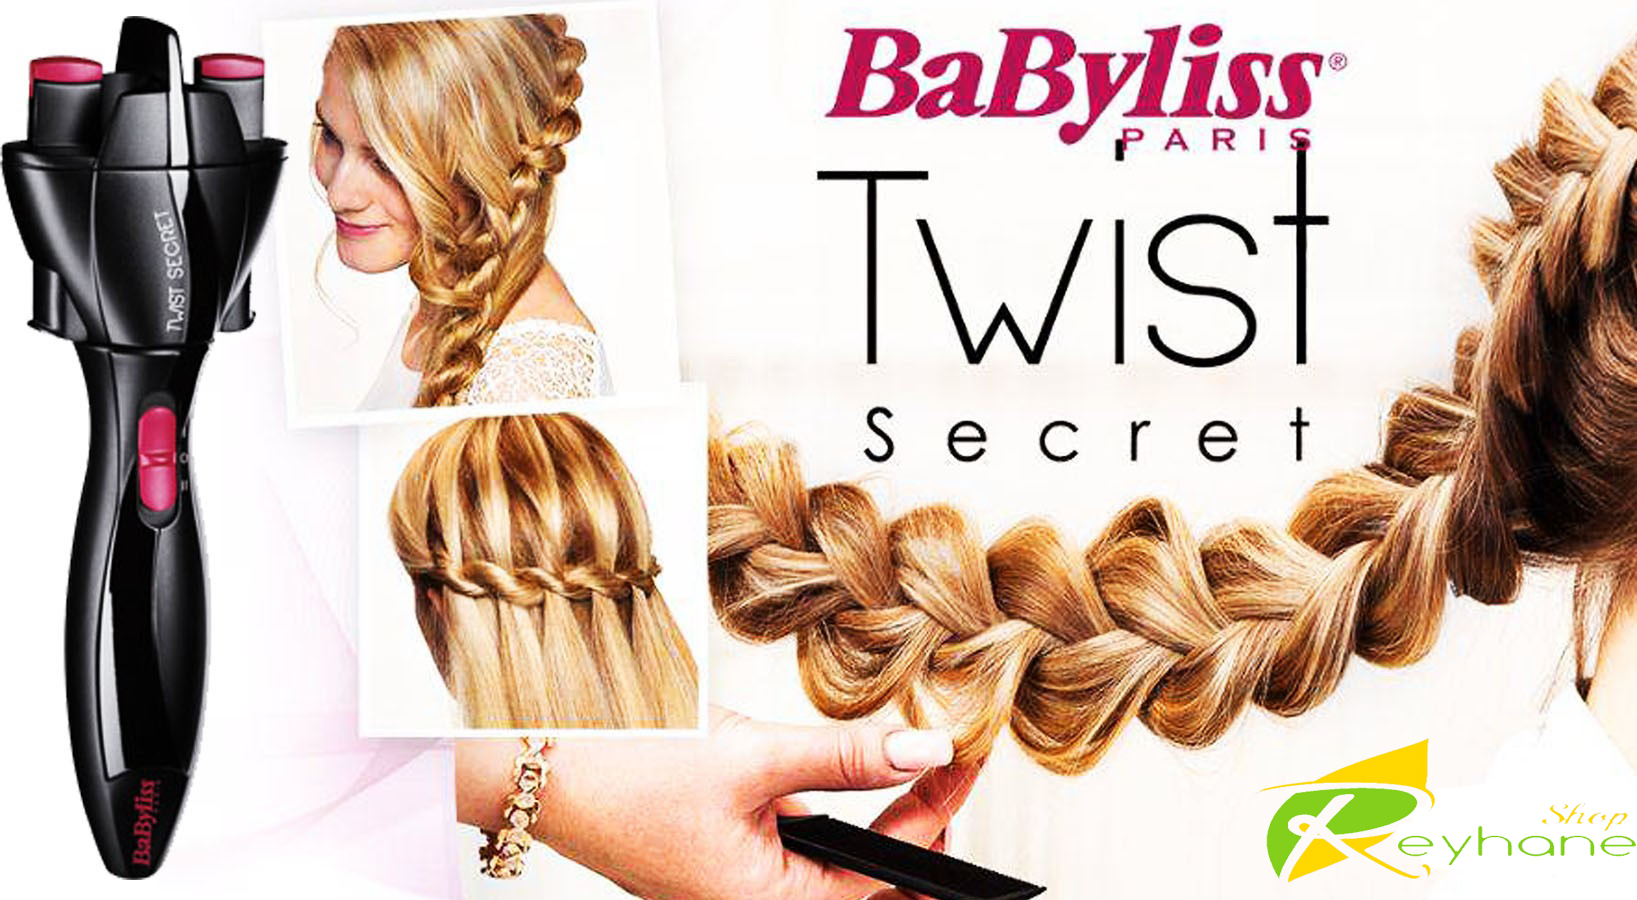 http://s5.picofile.com/file/8287856776/babyliss.jpg